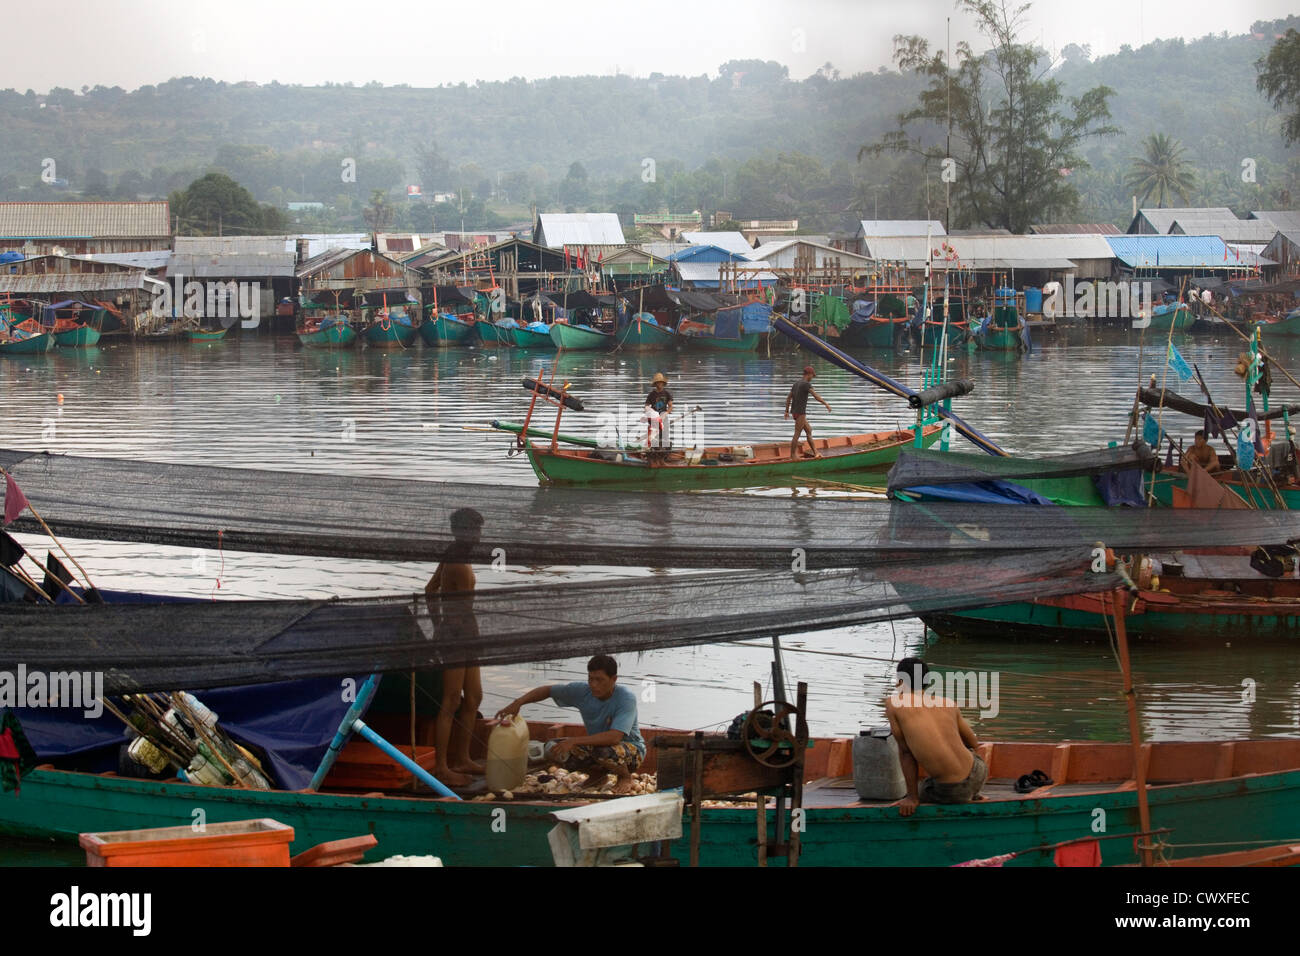 A busy fishing village with wooden boats & homes on stilts, Sihanoukville, Cambodia, South East Asia - Stock Image